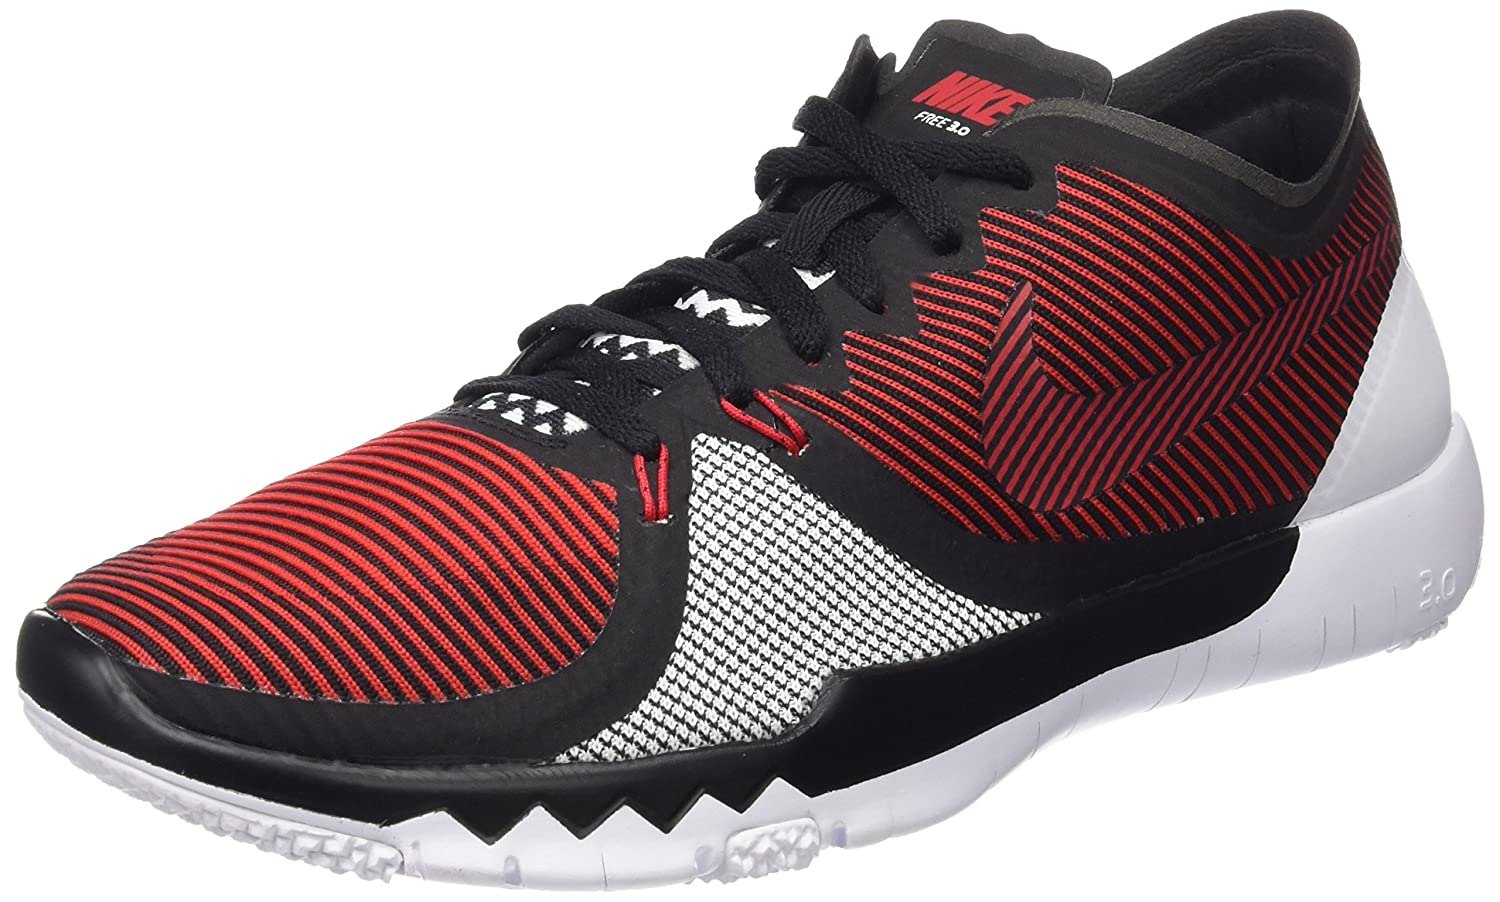 the best attitude b6a5e 0b96c Nike Men s Free Trainer 3.0 V4 Training Shoe (9.5, University Red Black White)   Buy Online at Low Prices in India - Amazon.in